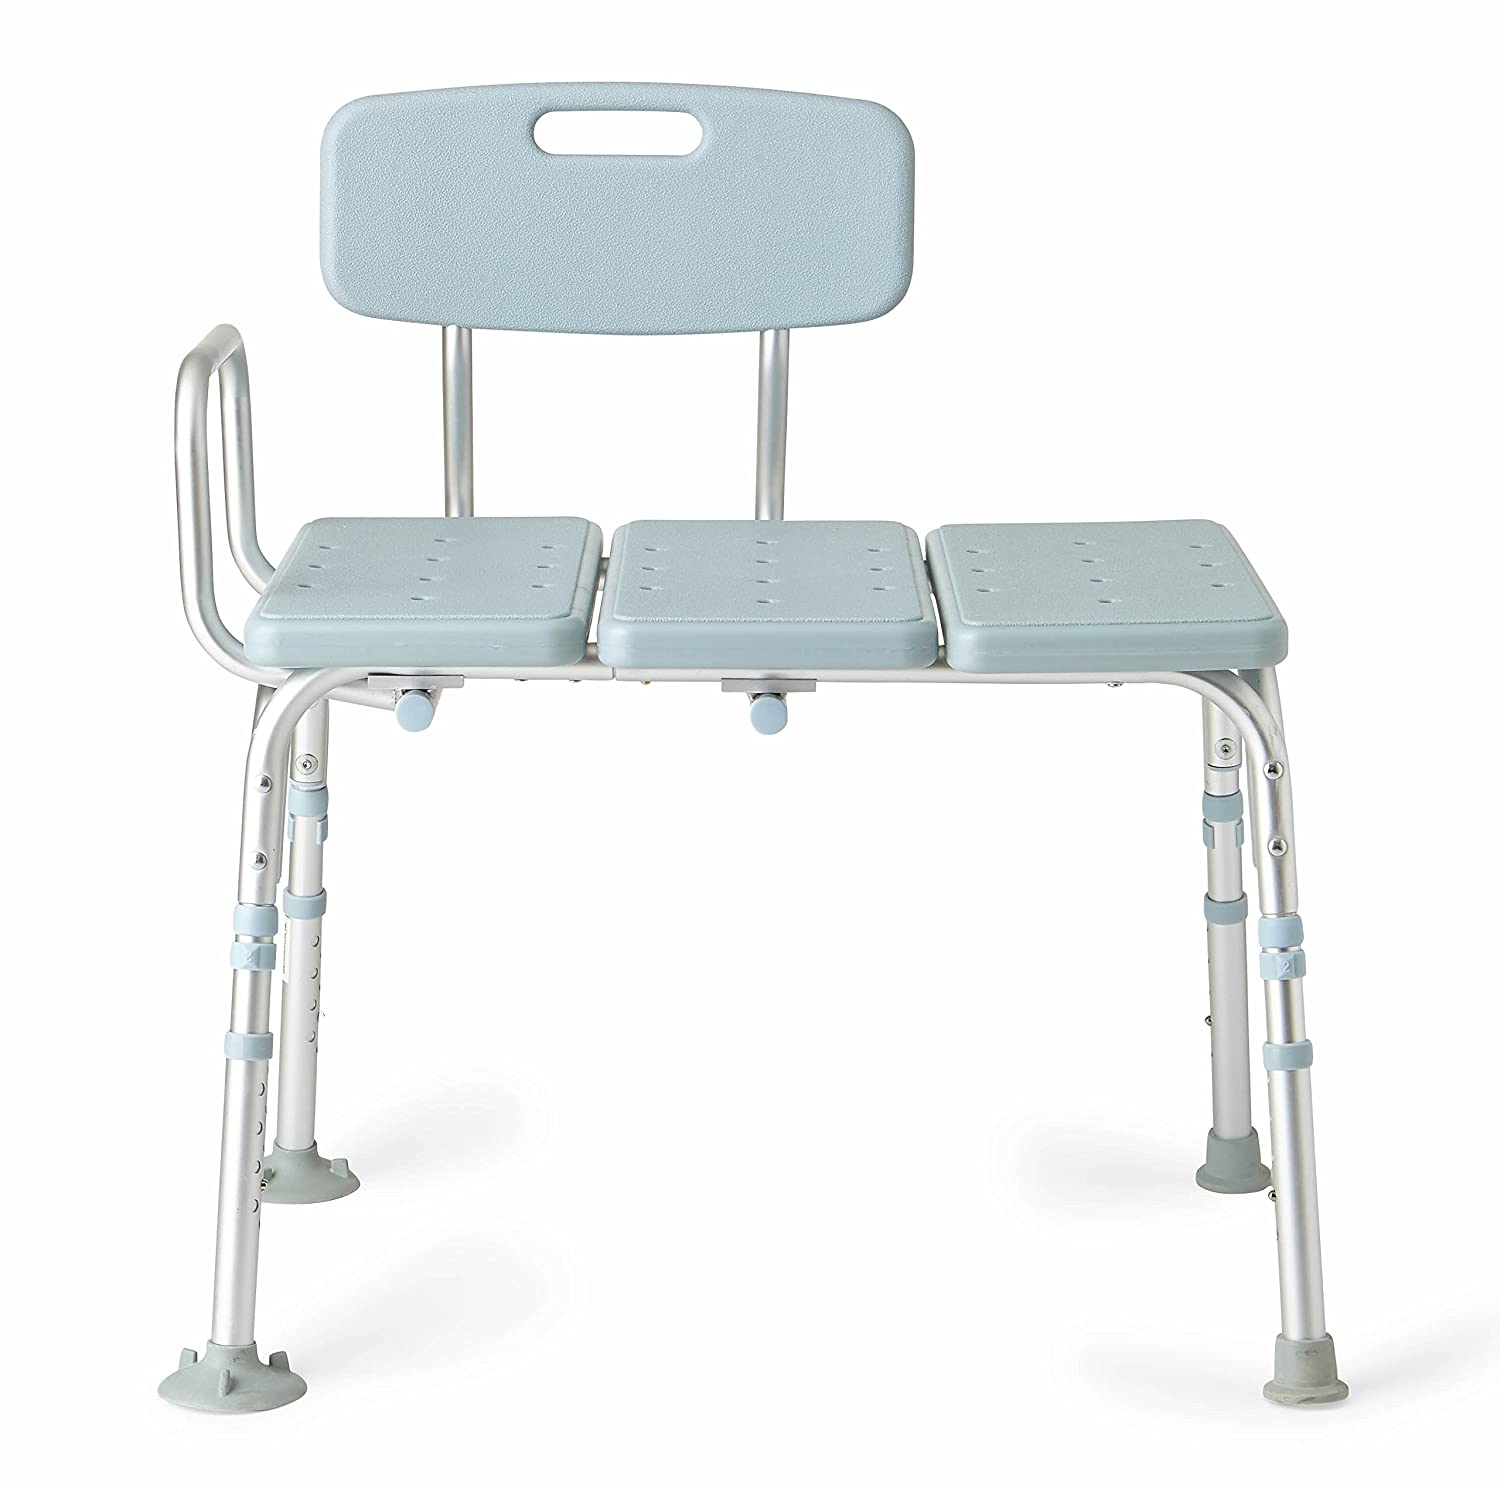 Amazon.com: Medline Microban Medical Transfer Bench with ...